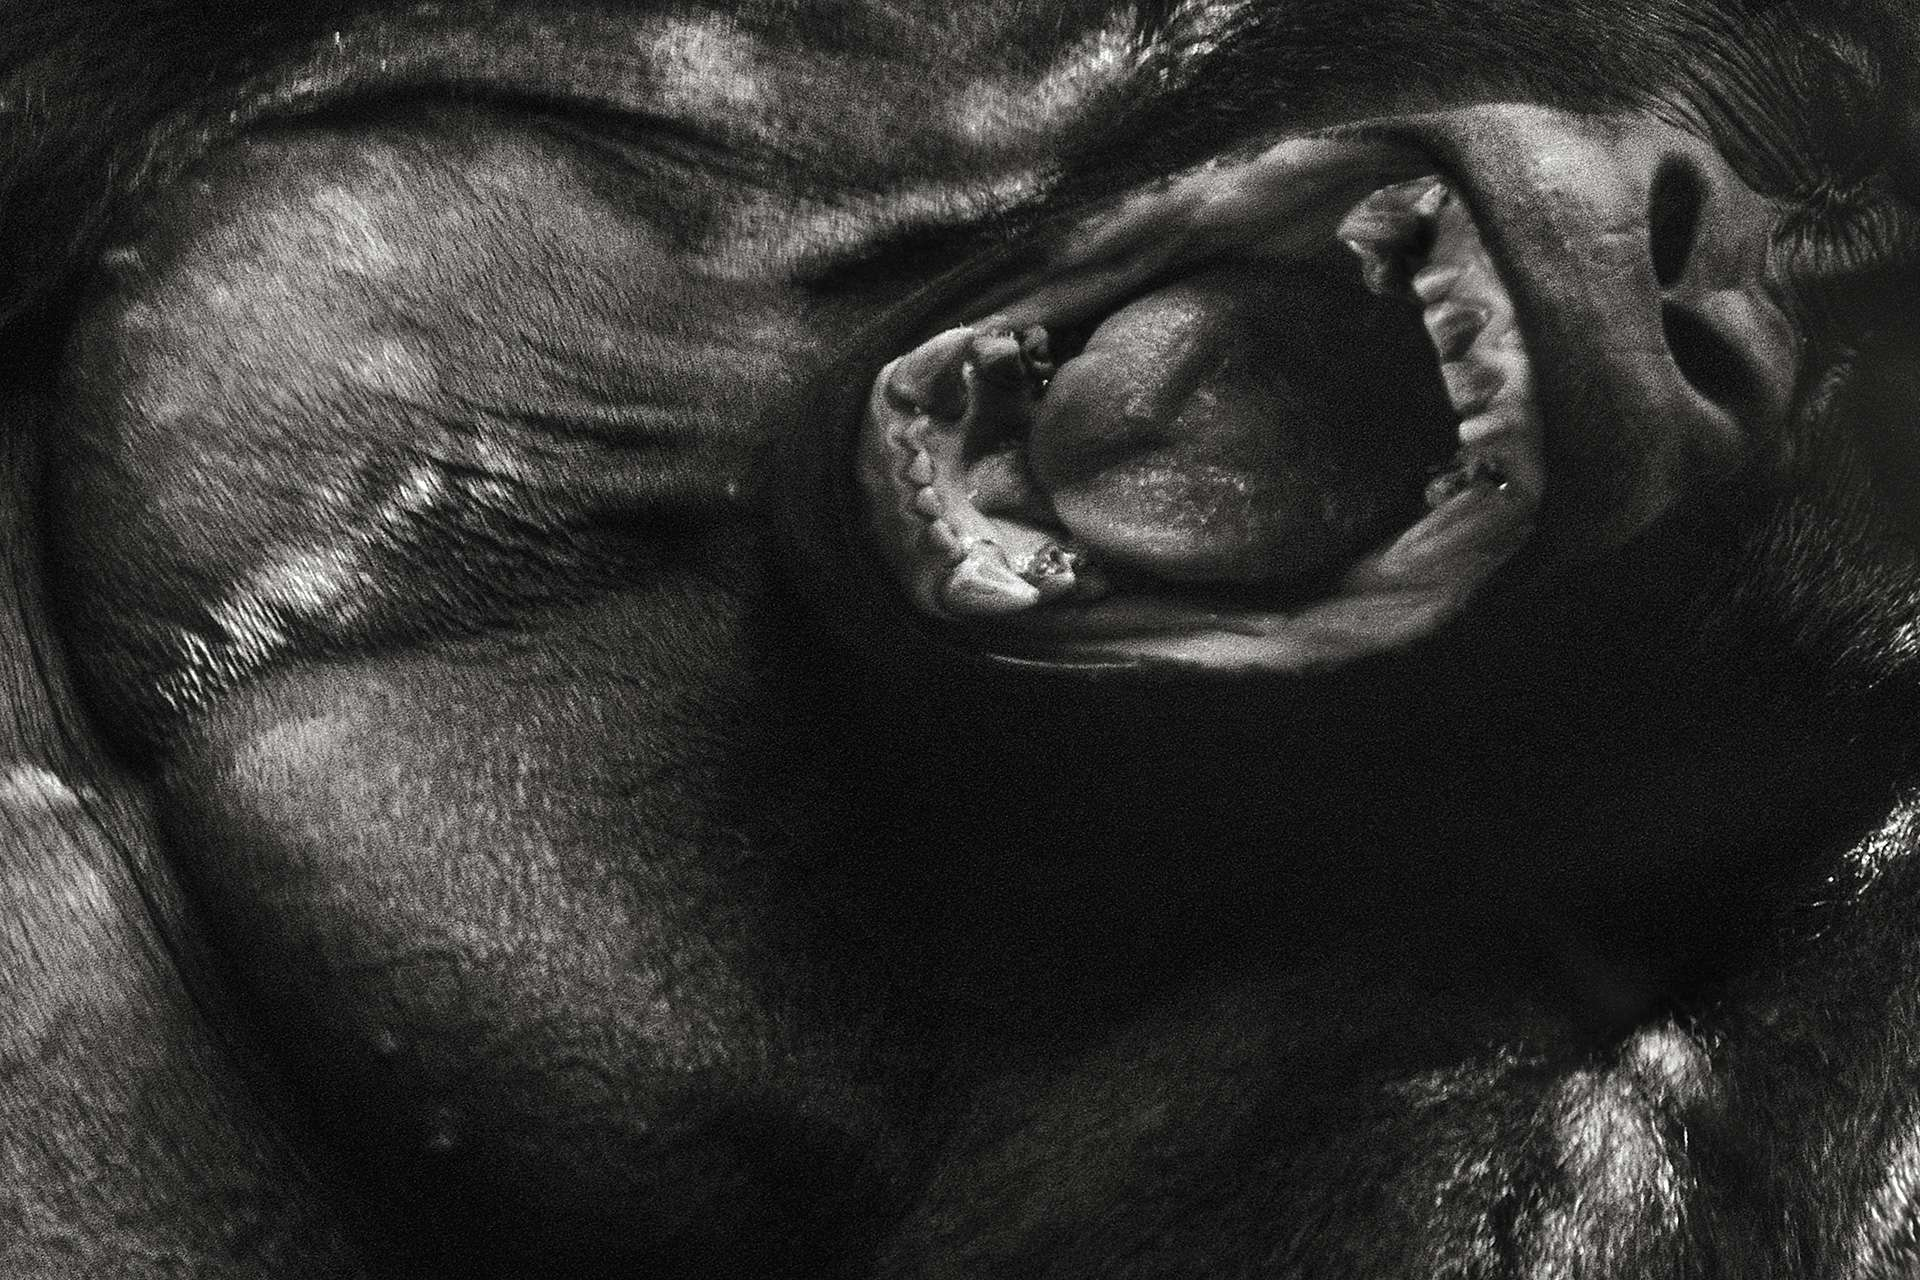 Gilles Martin's photograph of a gorilla from Congo-DRC